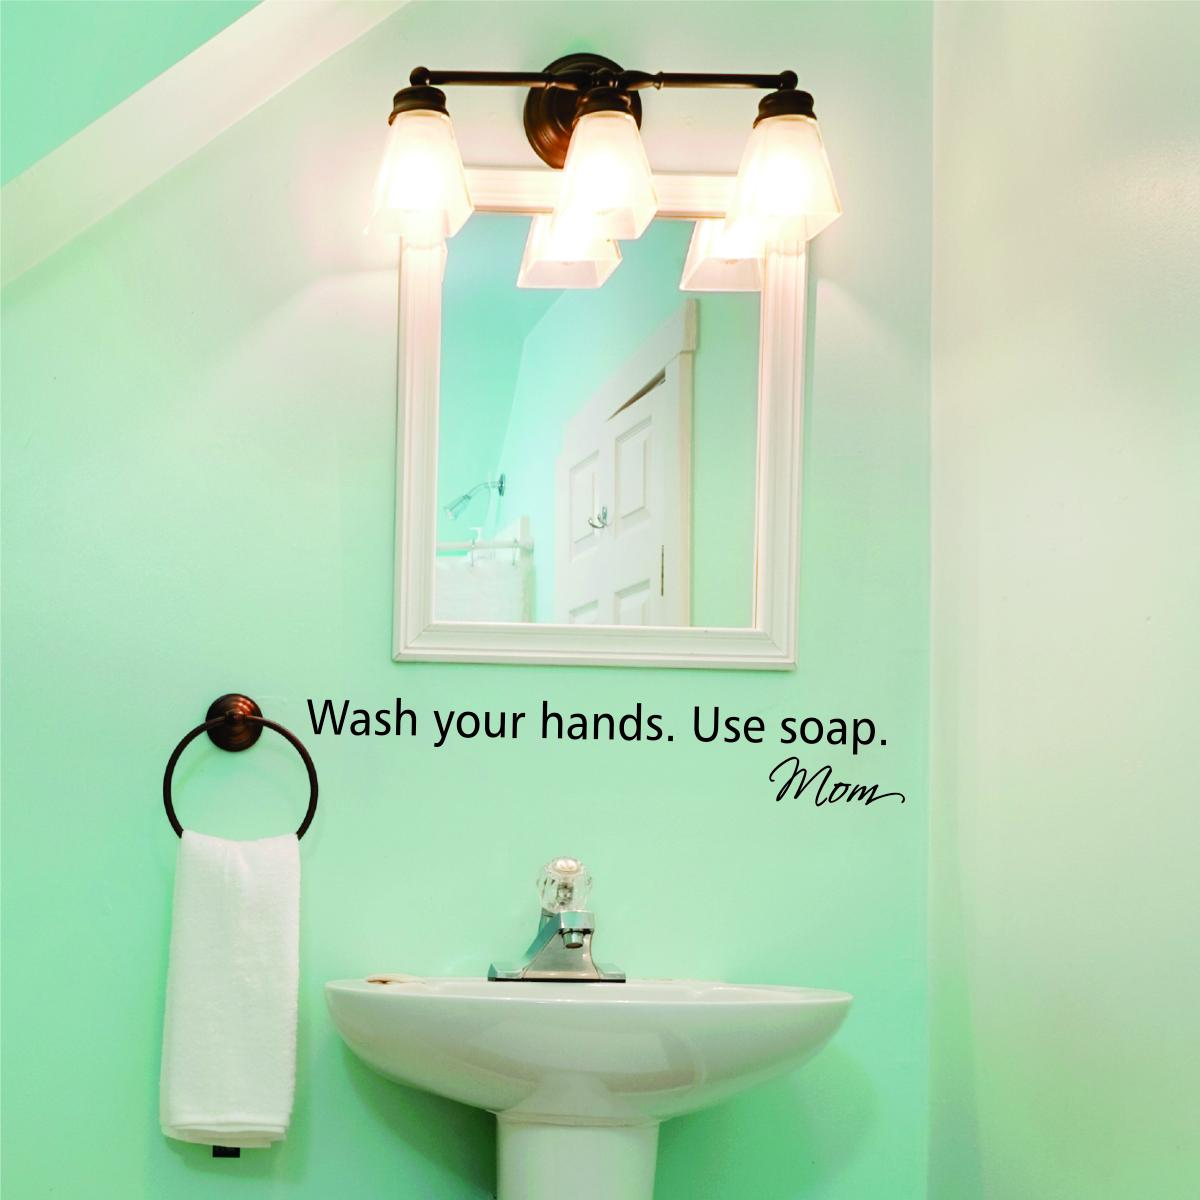 Wash Your Hands Wall Quotes Decal Wallquotes Com